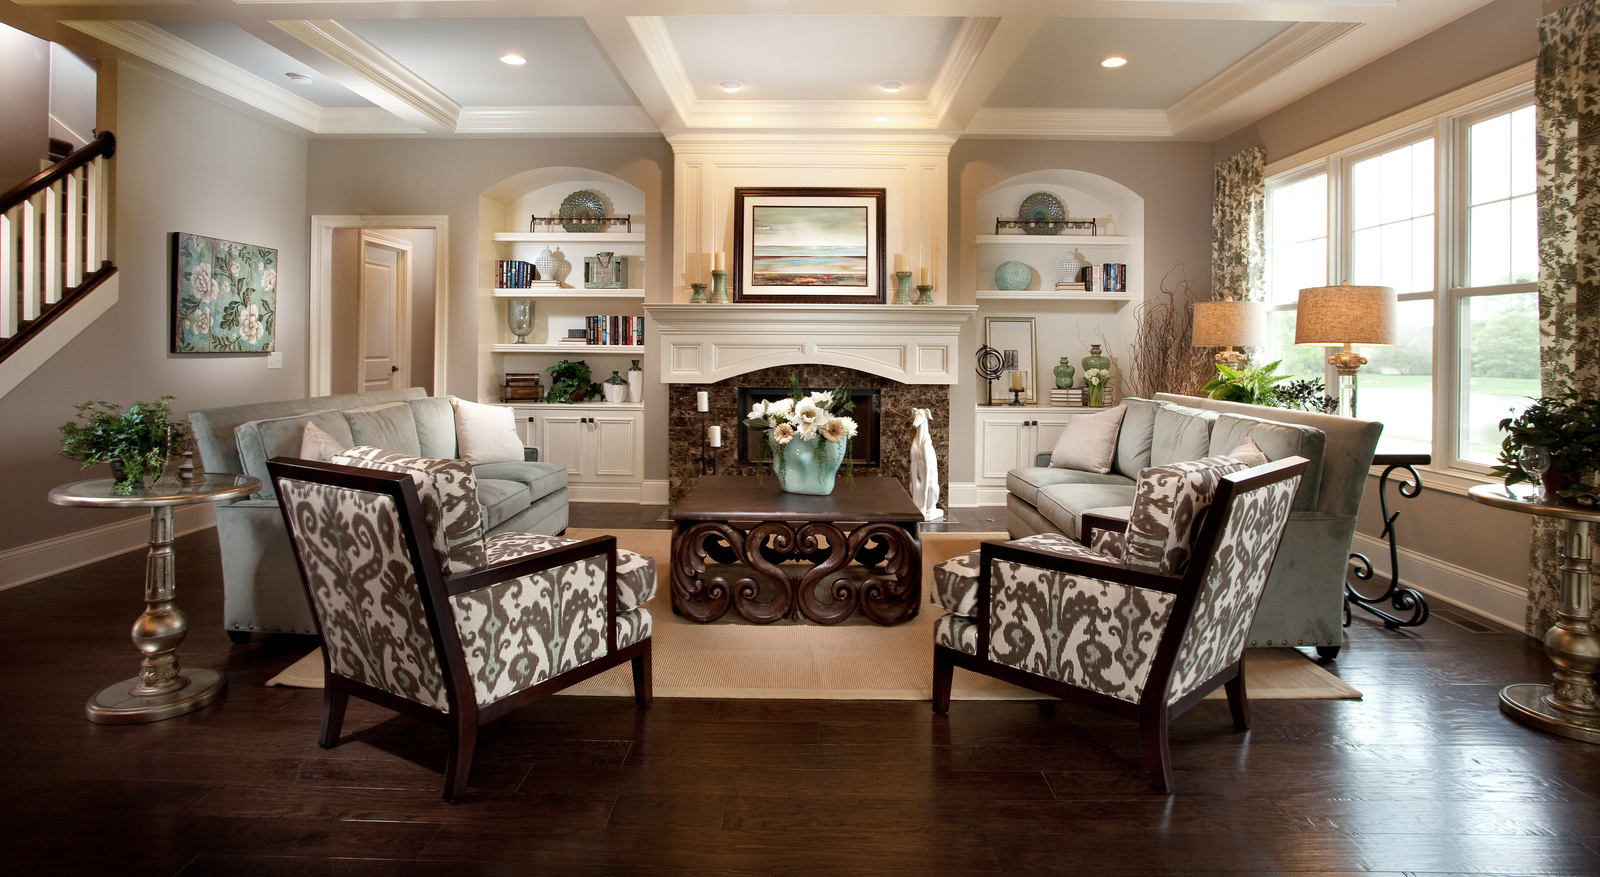 Wedgewood building company carmel in company profile - Model home interior paint colors ...